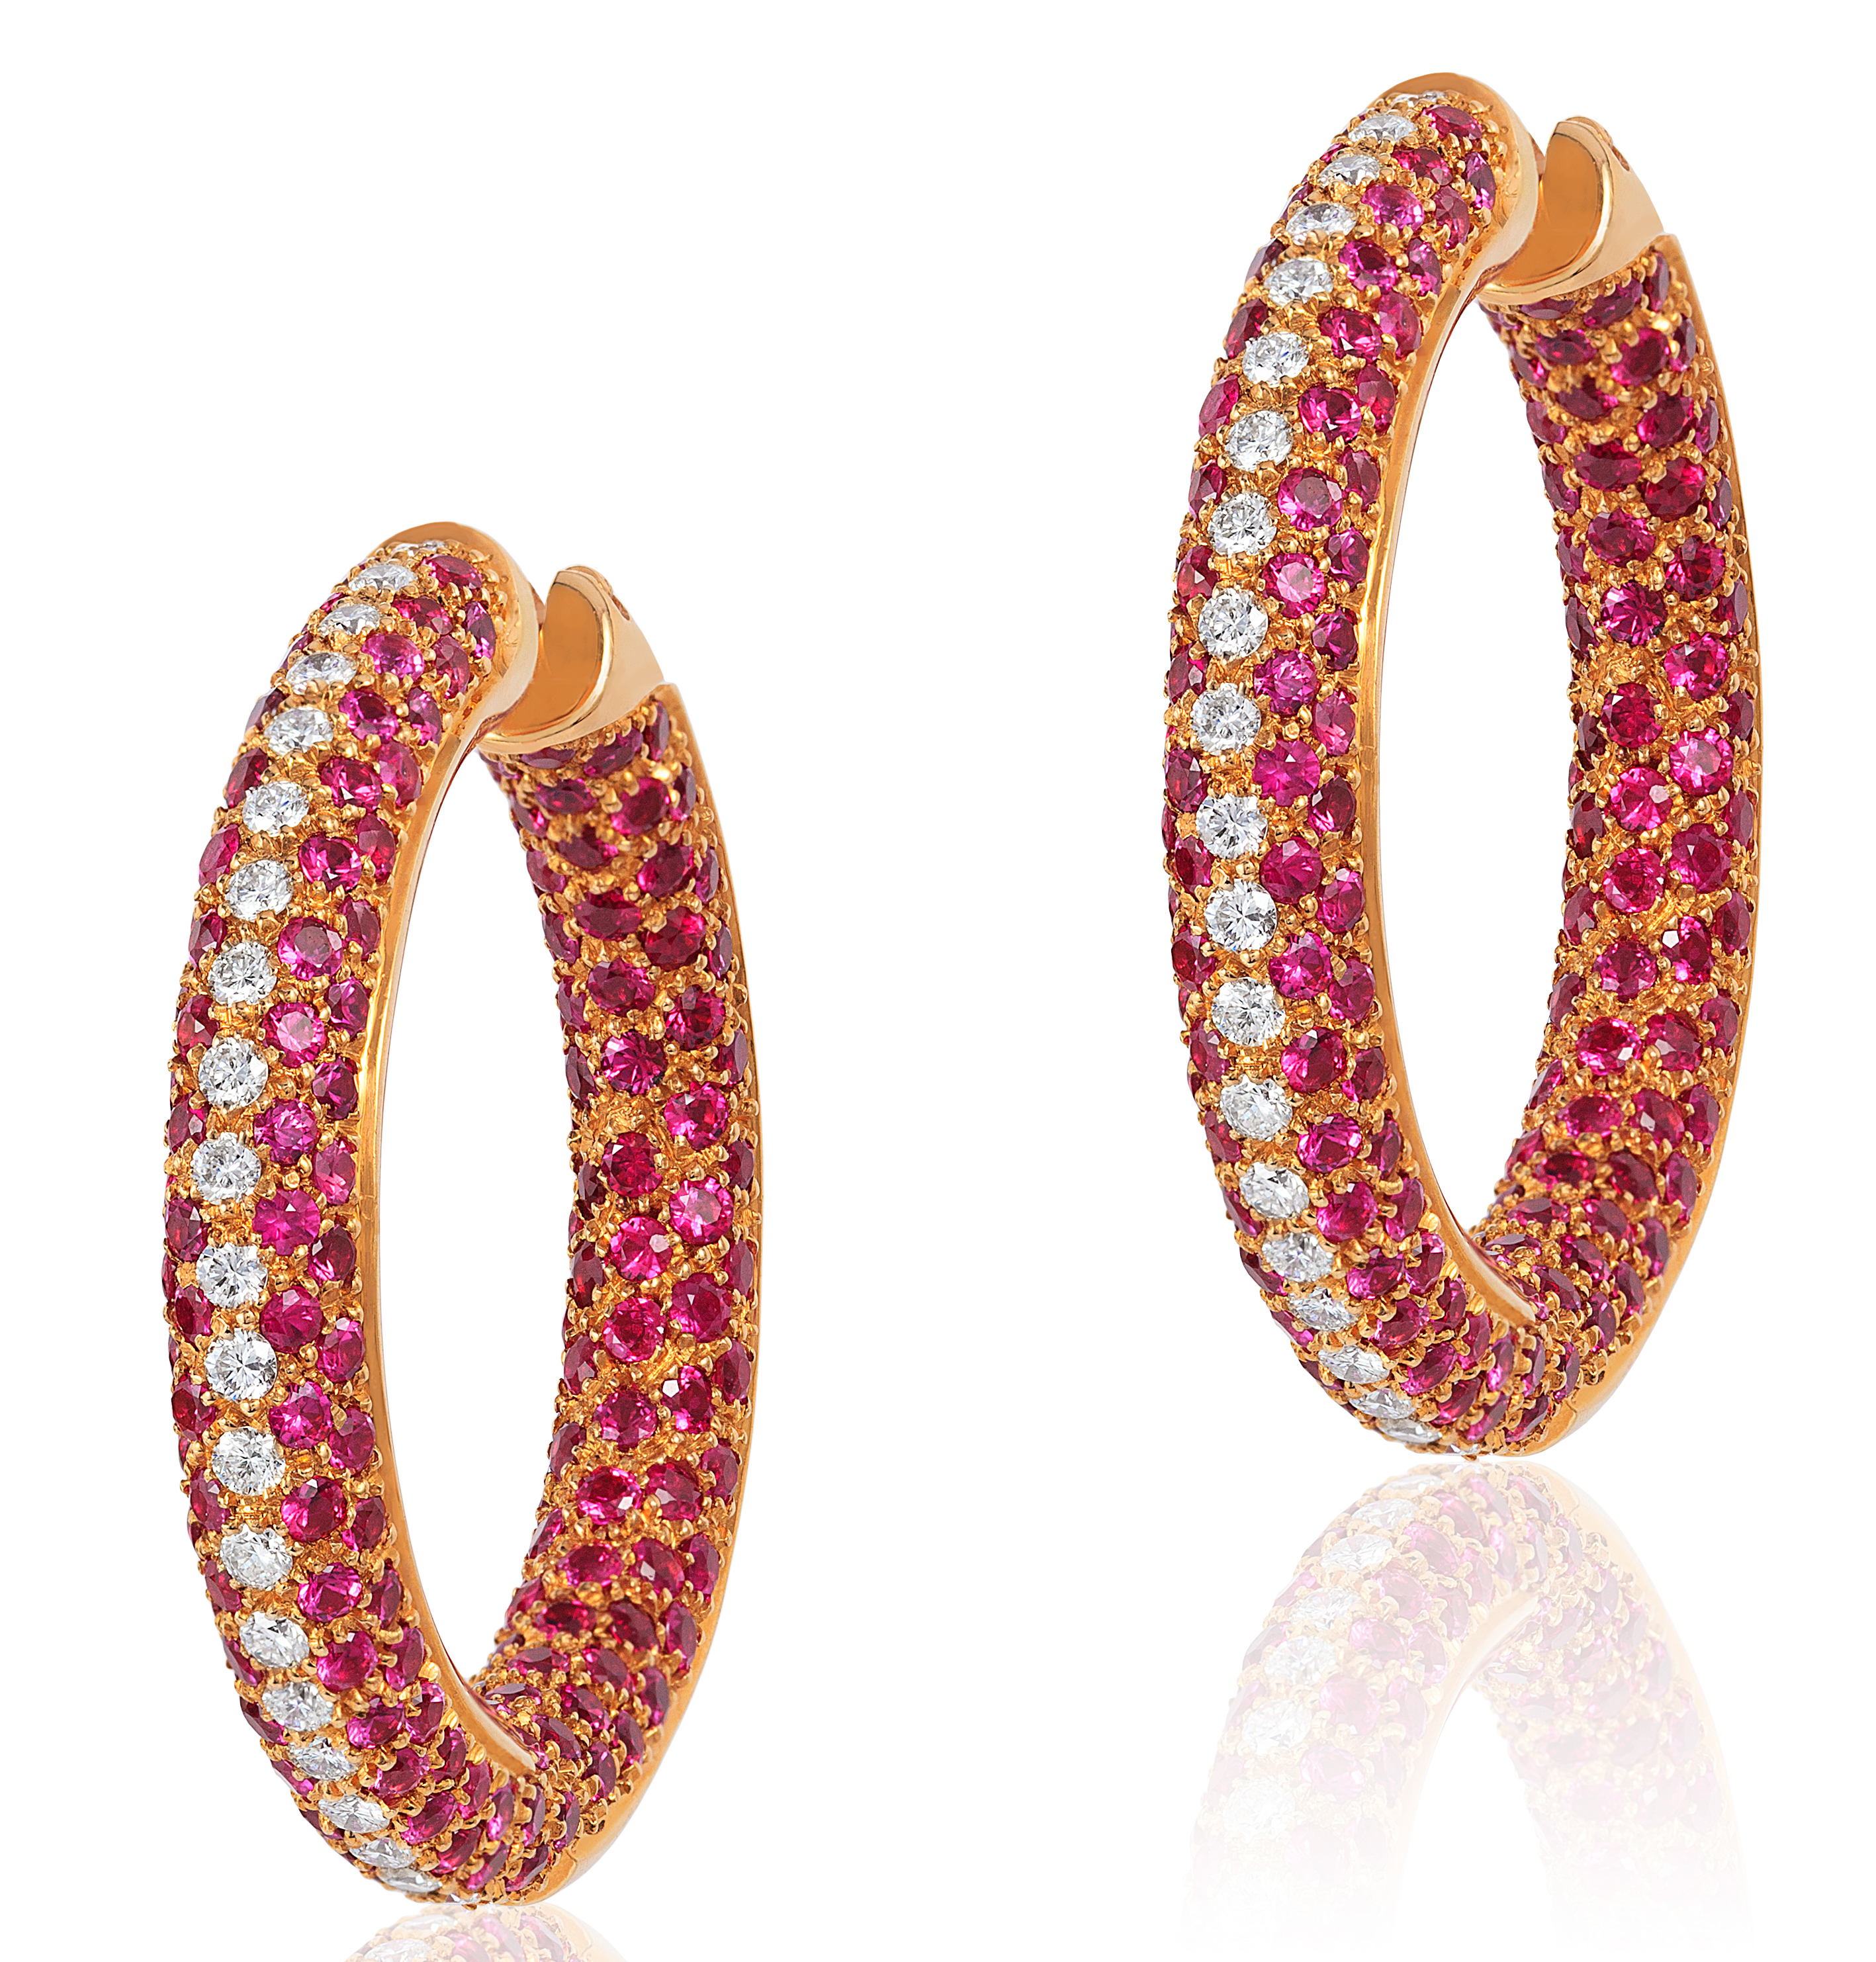 Andreoli hoop earrings | JCK On Your Market